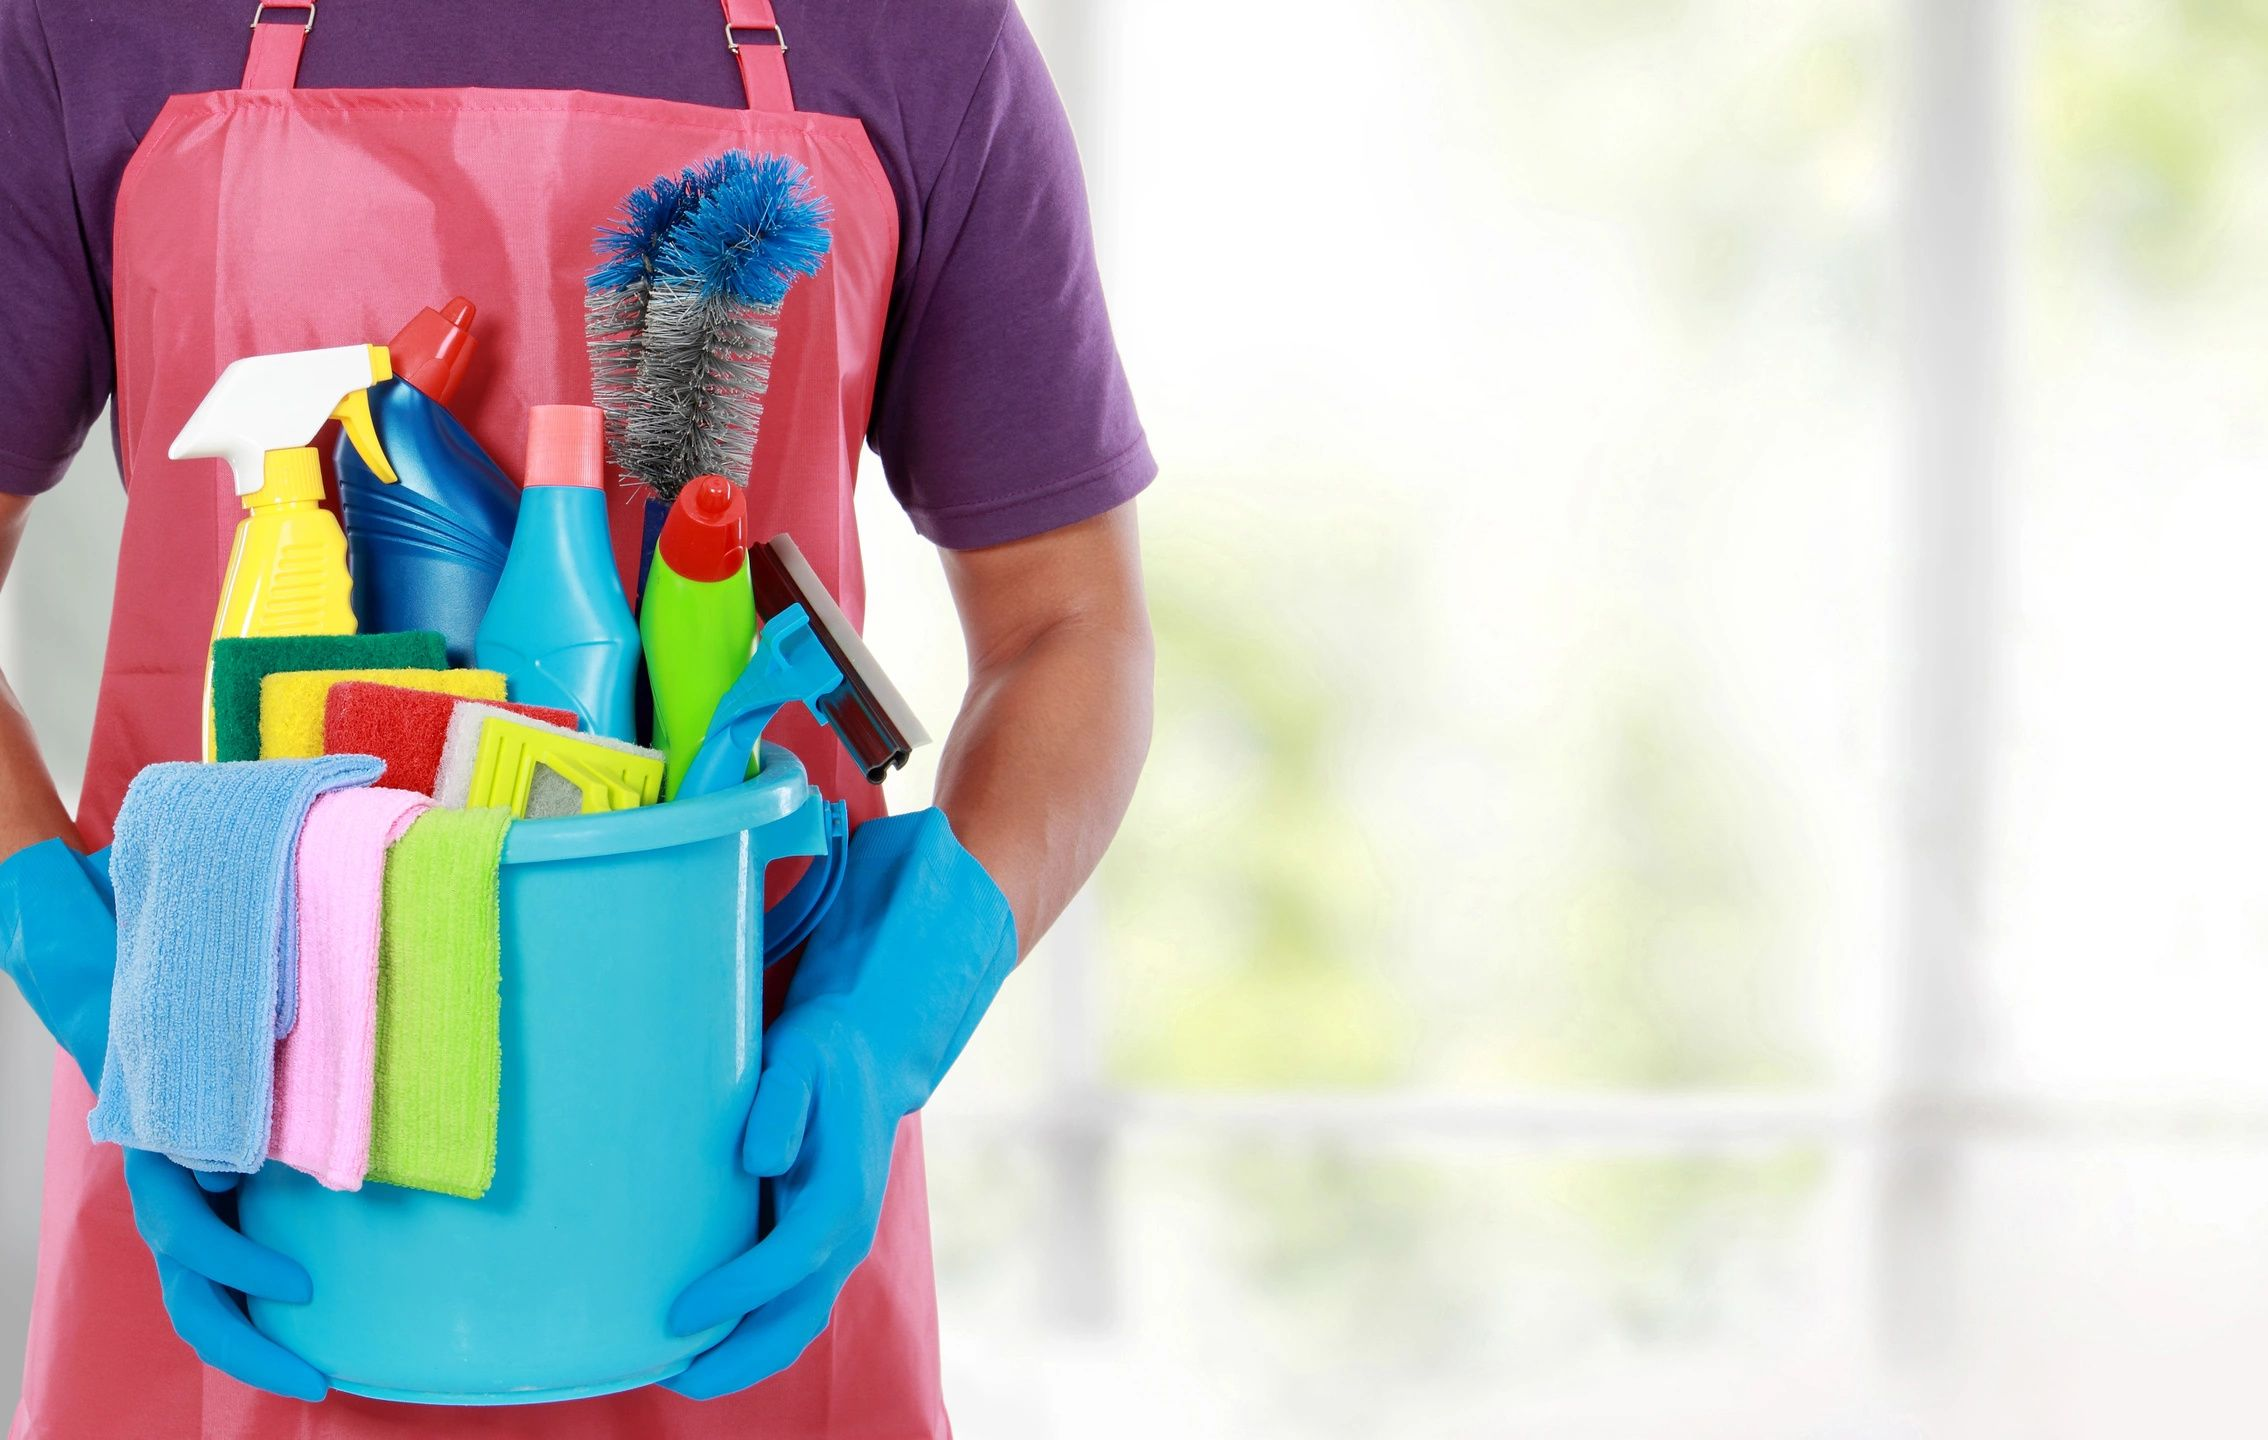 Hiring professionals for bond cleaning is not tough anymore – know why